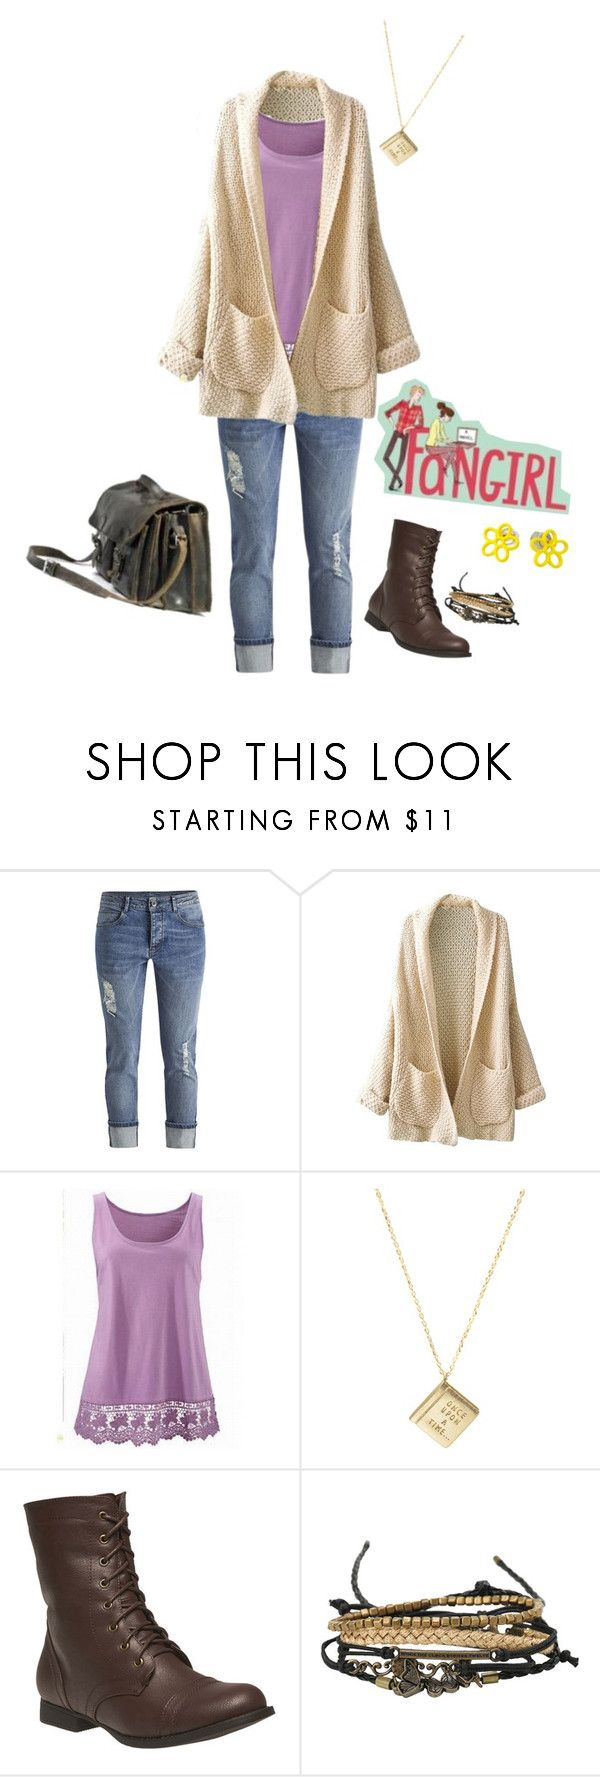 """""""Cath Avery 1.0 {Fangirl}"""" by sarah-natalie ❤ liked on Polyvore featuring Once Upon a Time, Wet Seal, Disney and Marc by Marc Jacobs"""